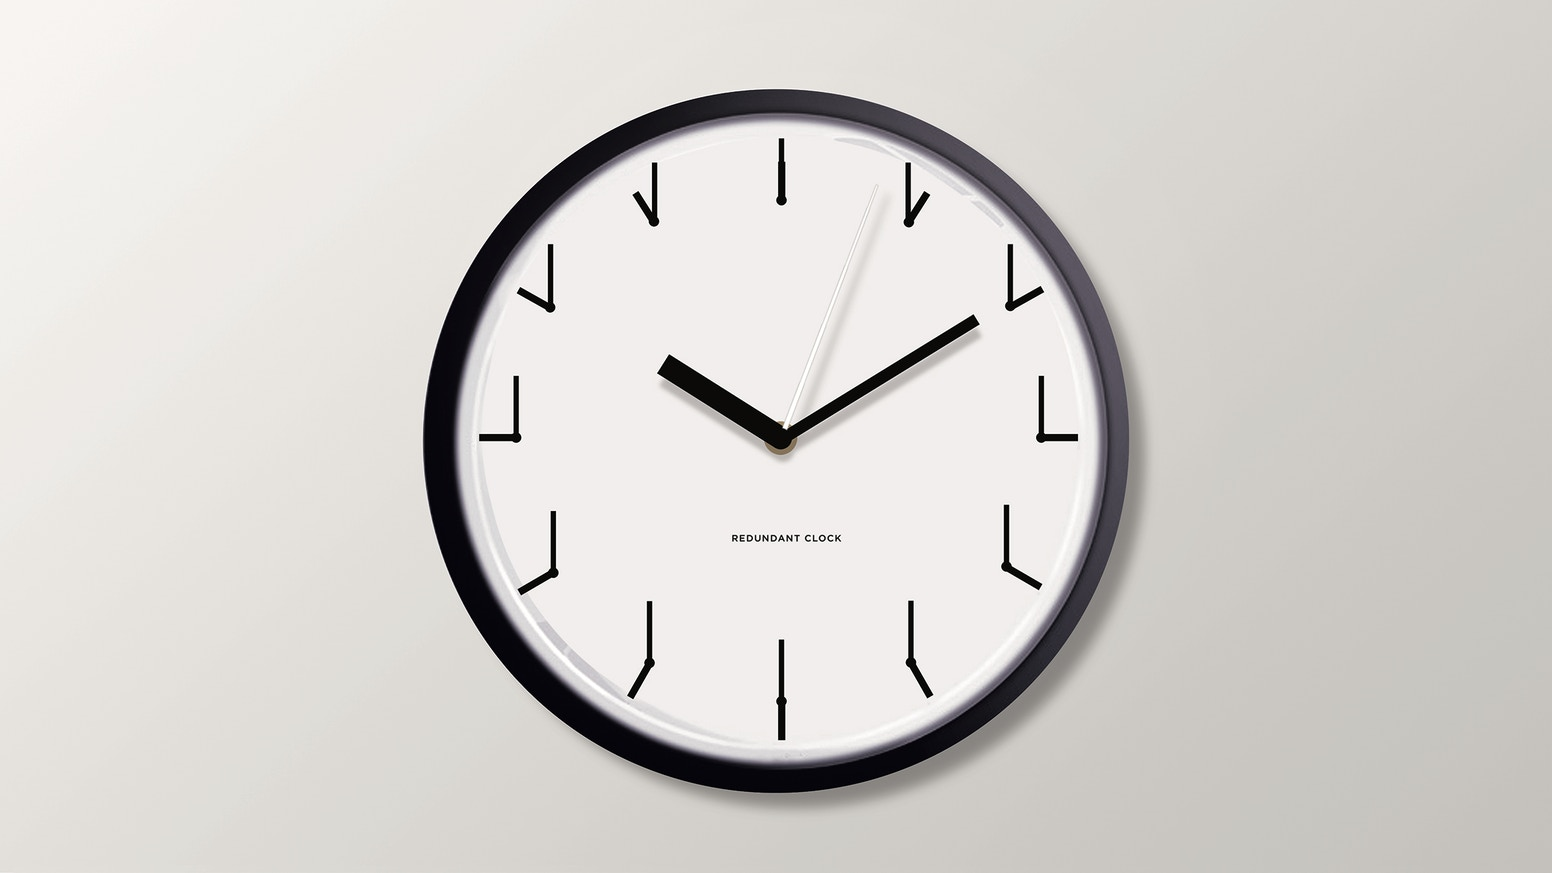 Redundant clock by ji lee kickstarter simple modern and totally redundant wall clock that shows what time it is amipublicfo Choice Image